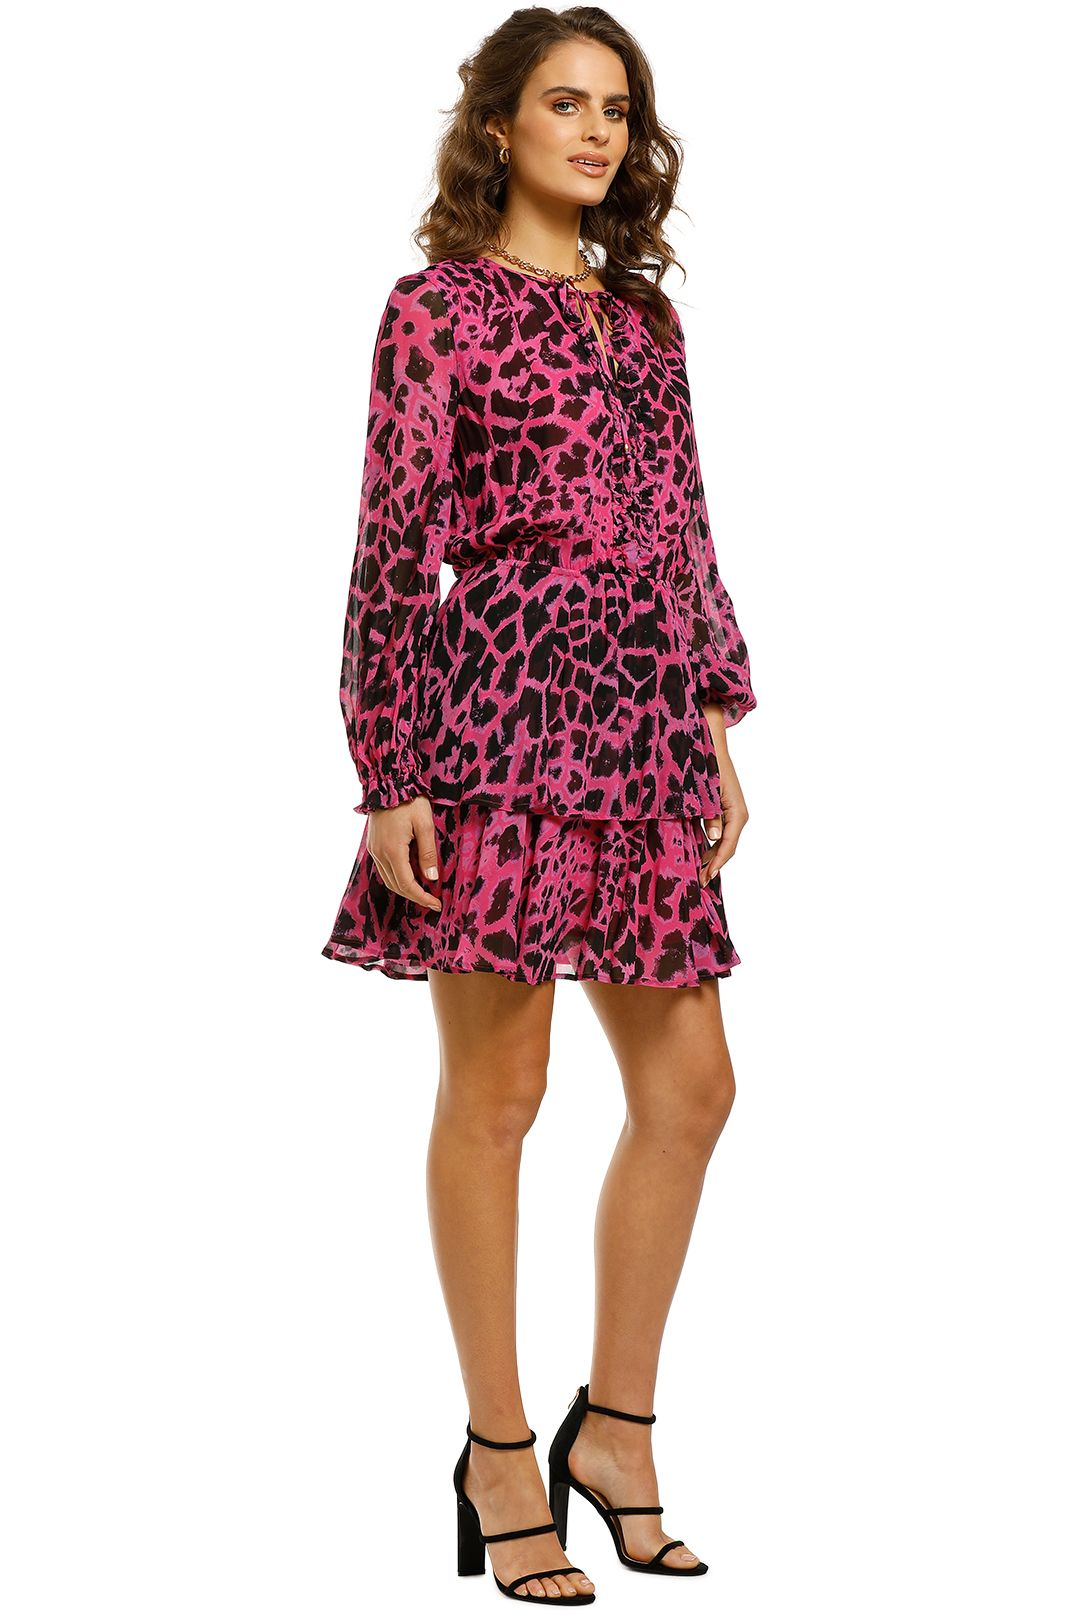 Husk-Zirafa-Dress-Pink-Giraffe-Side